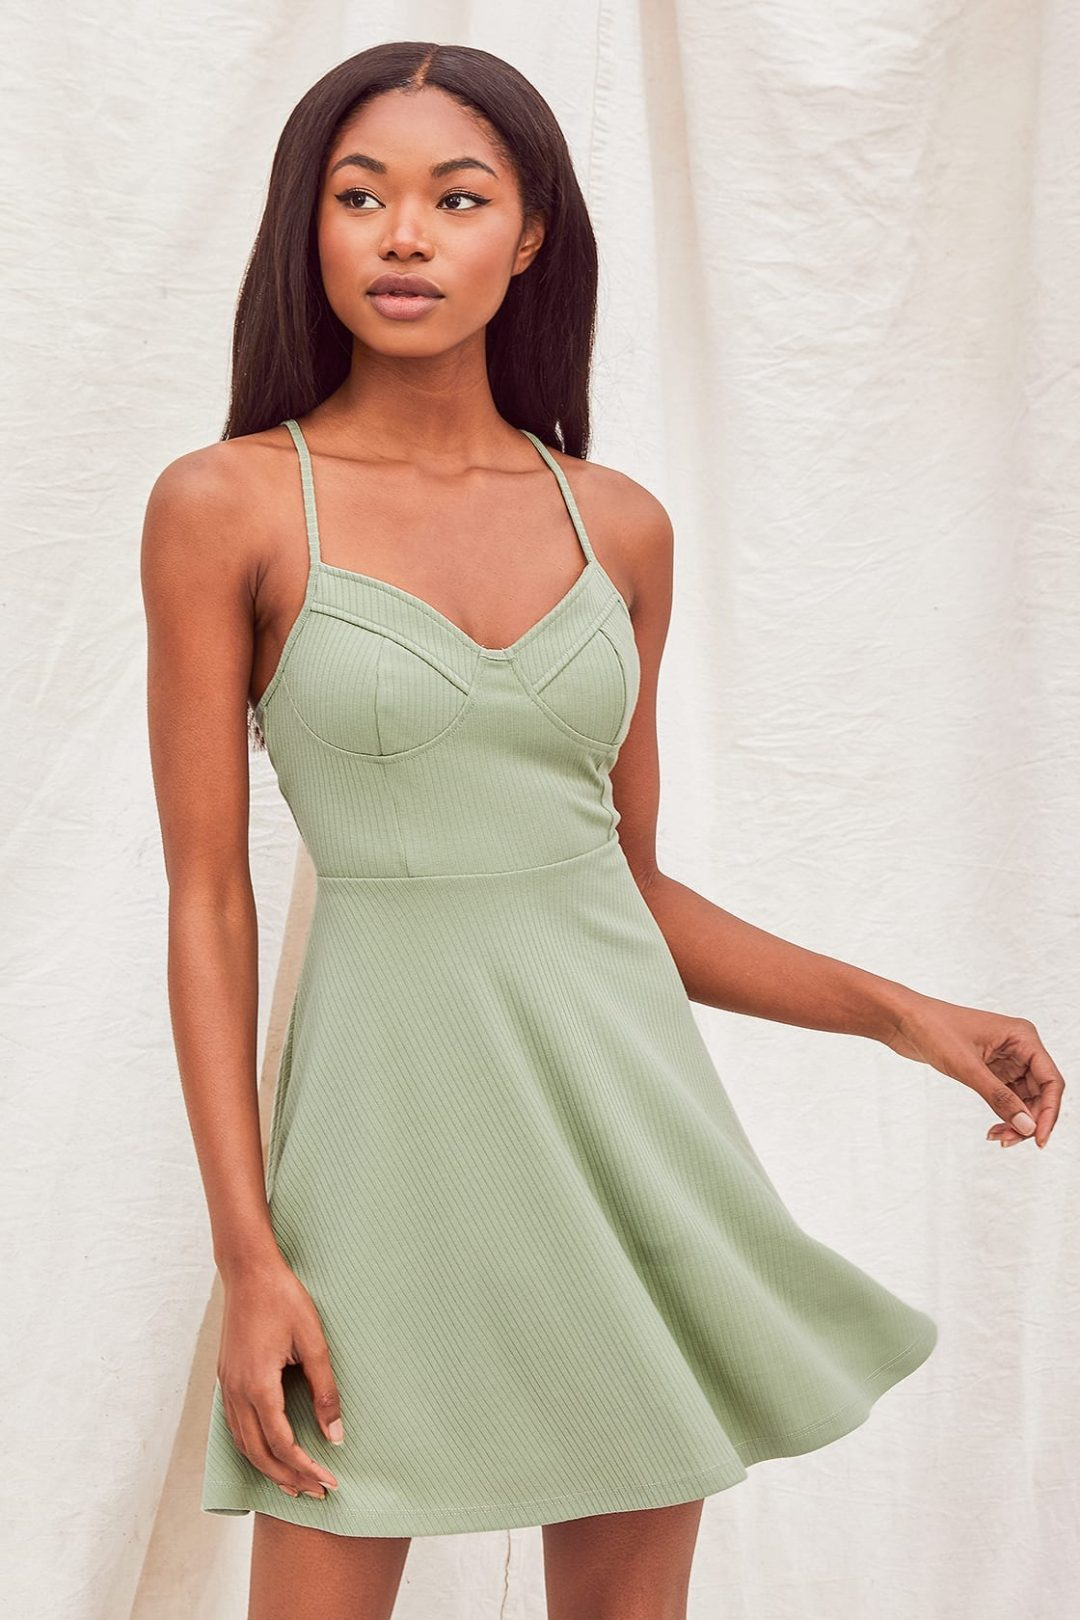 What To Wear With Sperrys: Sage green bustier skater dress